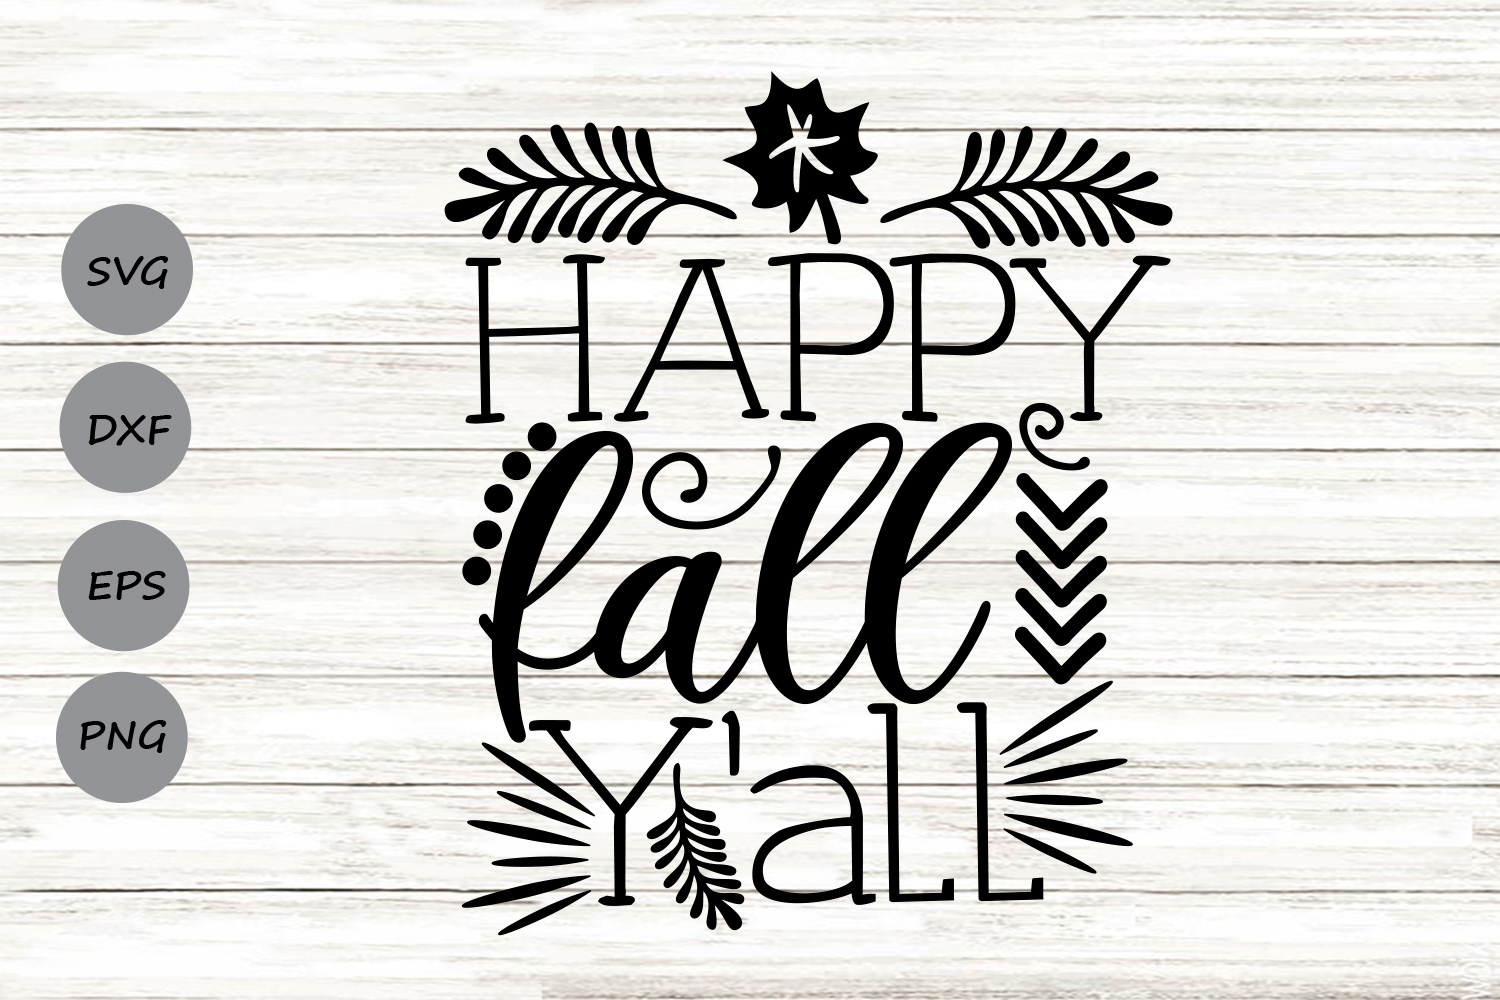 Download Free Happy Fall Y All Svg Graphic By Cosmosfineart Creative Fabrica for Cricut Explore, Silhouette and other cutting machines.